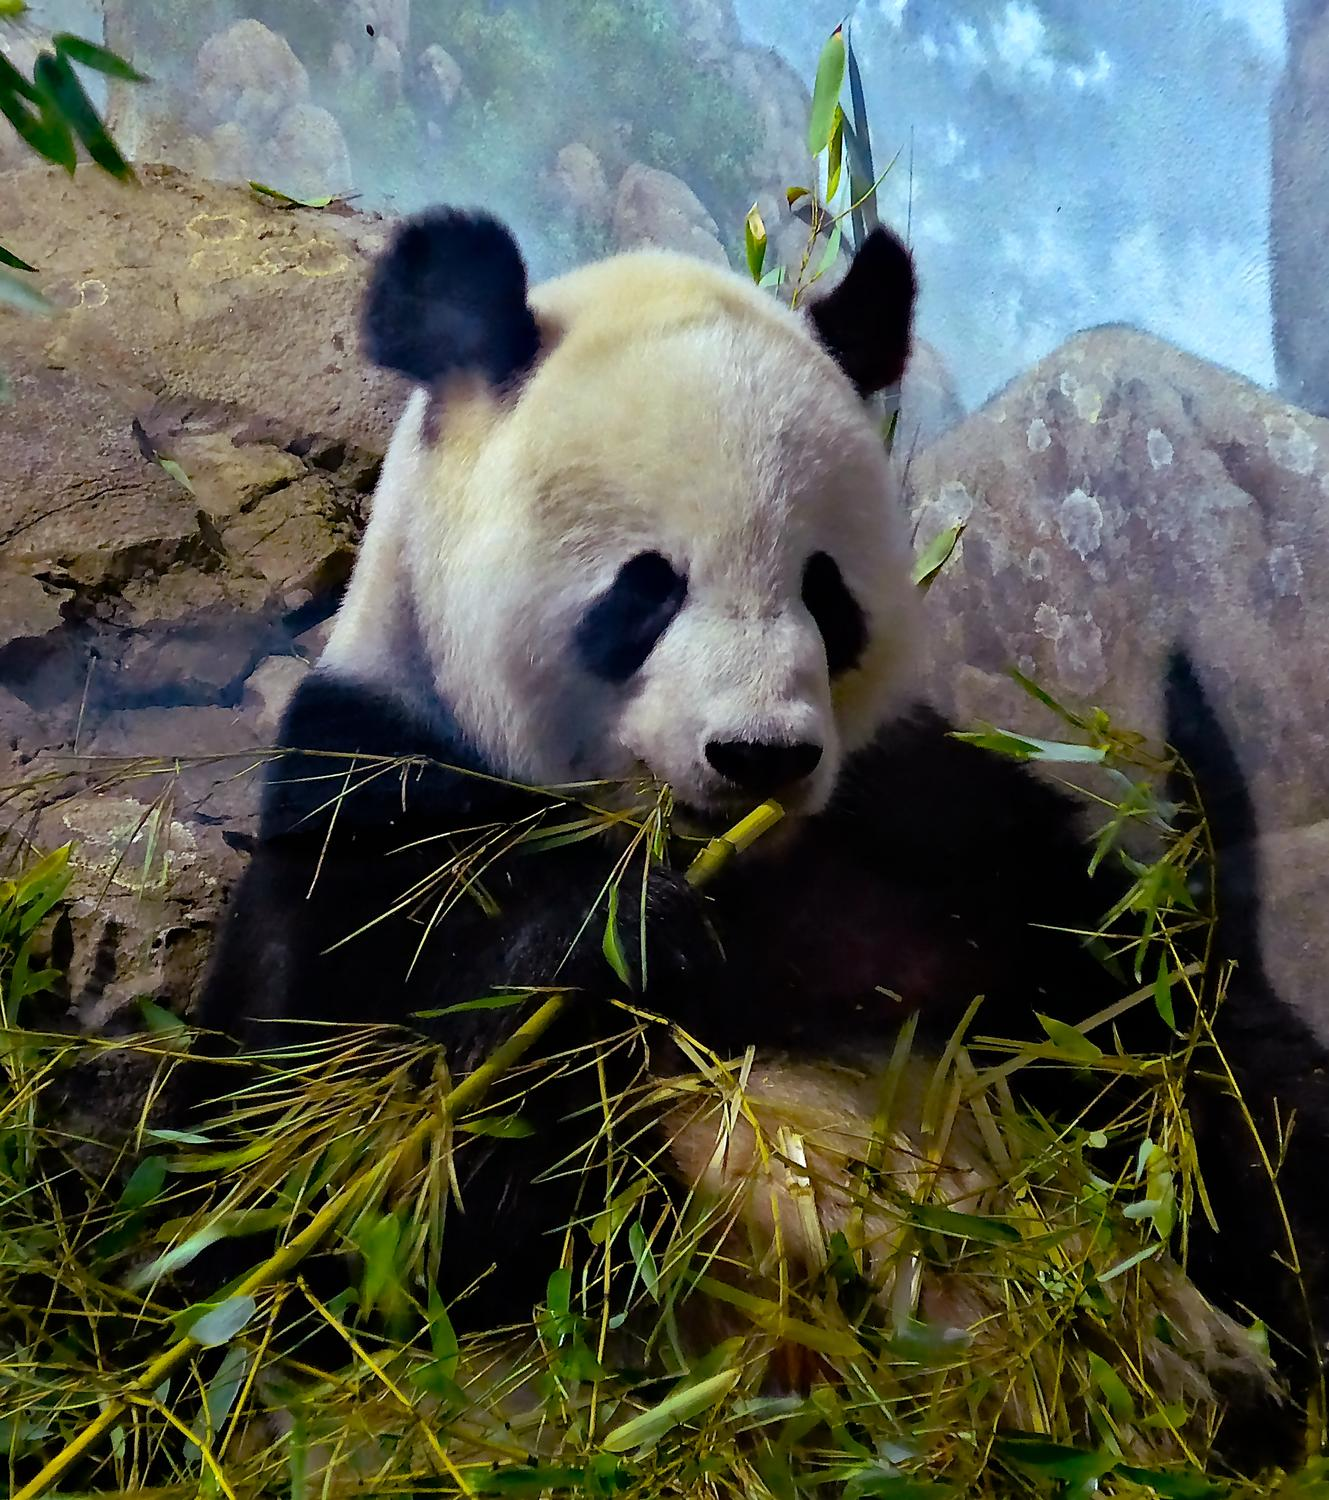 - Mr. Panda enjoys bamboo for lunch, <br> and for breakfast, <br> and for dinner. - - Panasonic DMC-LF1 - Washington DC National zoo - Tony Karp, design, art, photography, techno-impressionist, techno-impressionism, aerial photography , drone , drones , dji , mavic pro , video , 3D printing - Books -